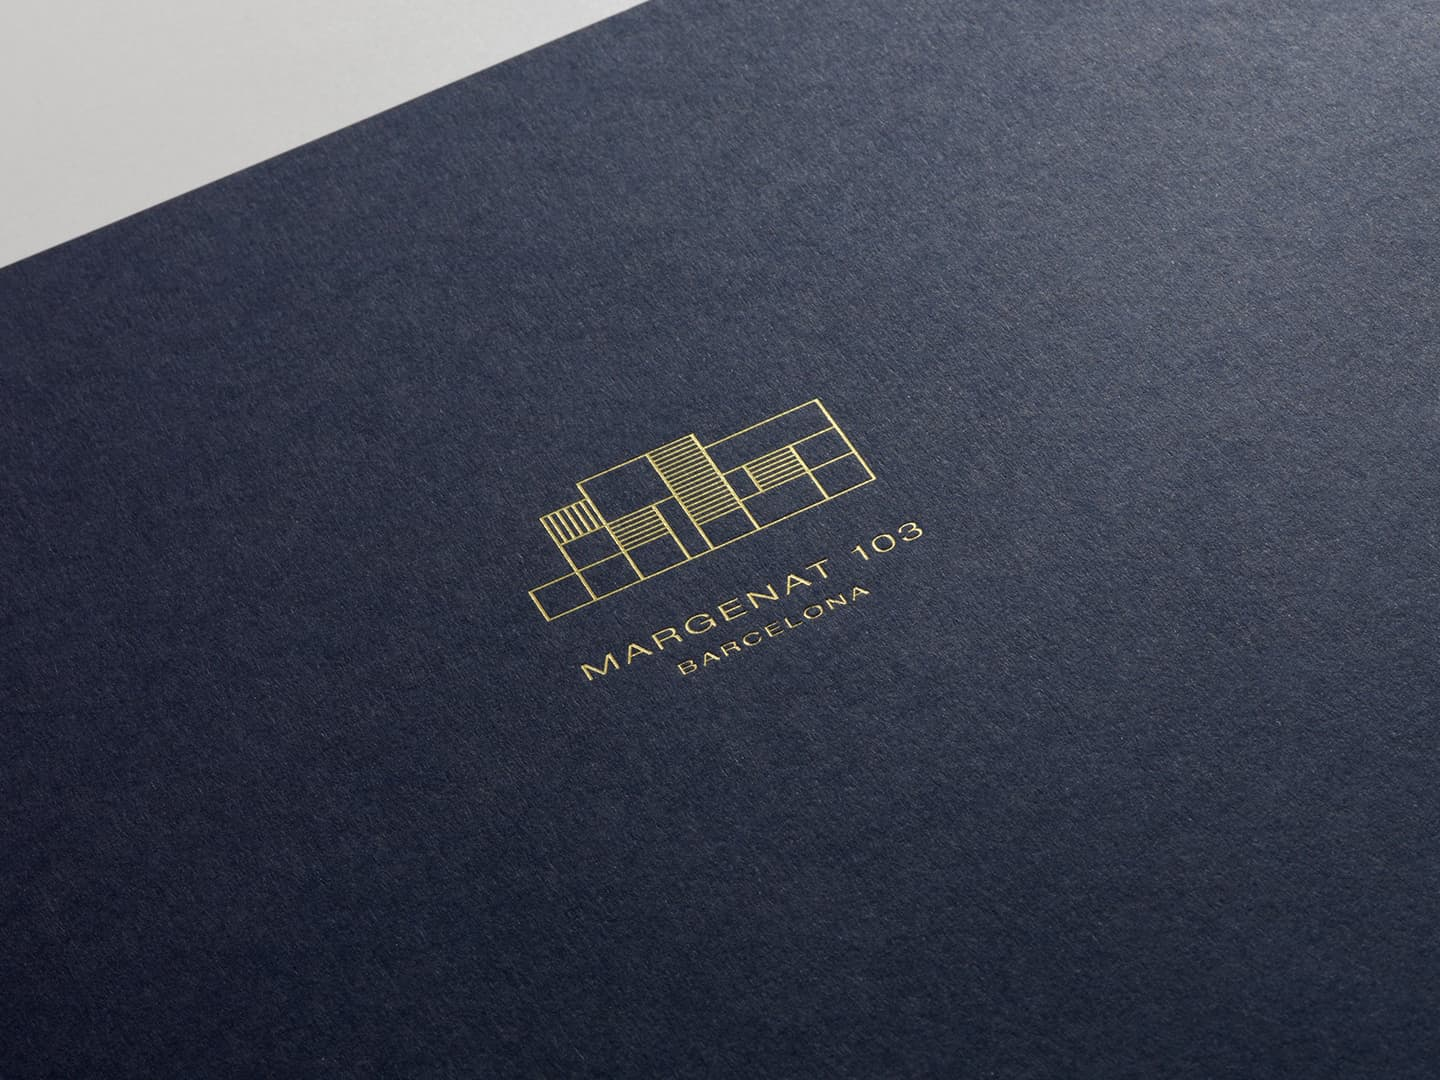 Detail of the cover of the Margenat book